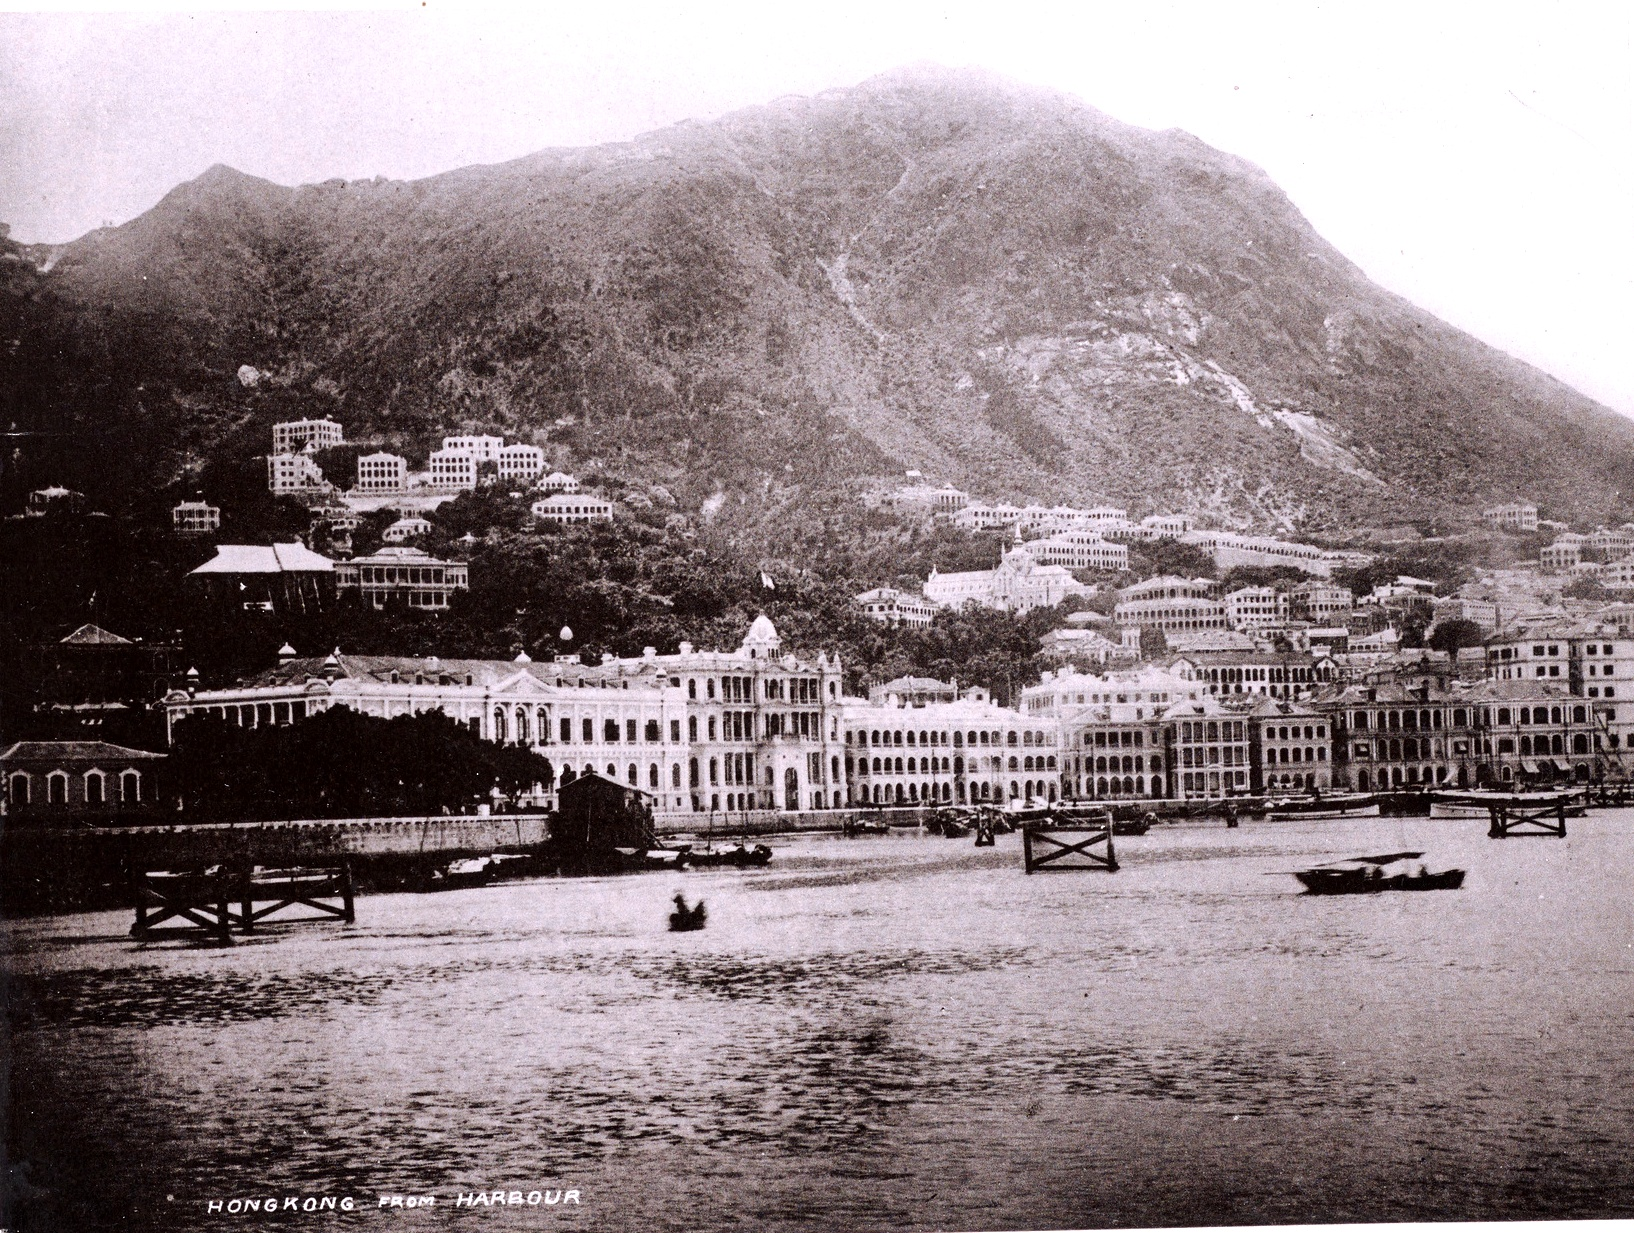 Hong Kong Harbour, 1889. (Digital image courtesy of the Getty's Open Content Program)